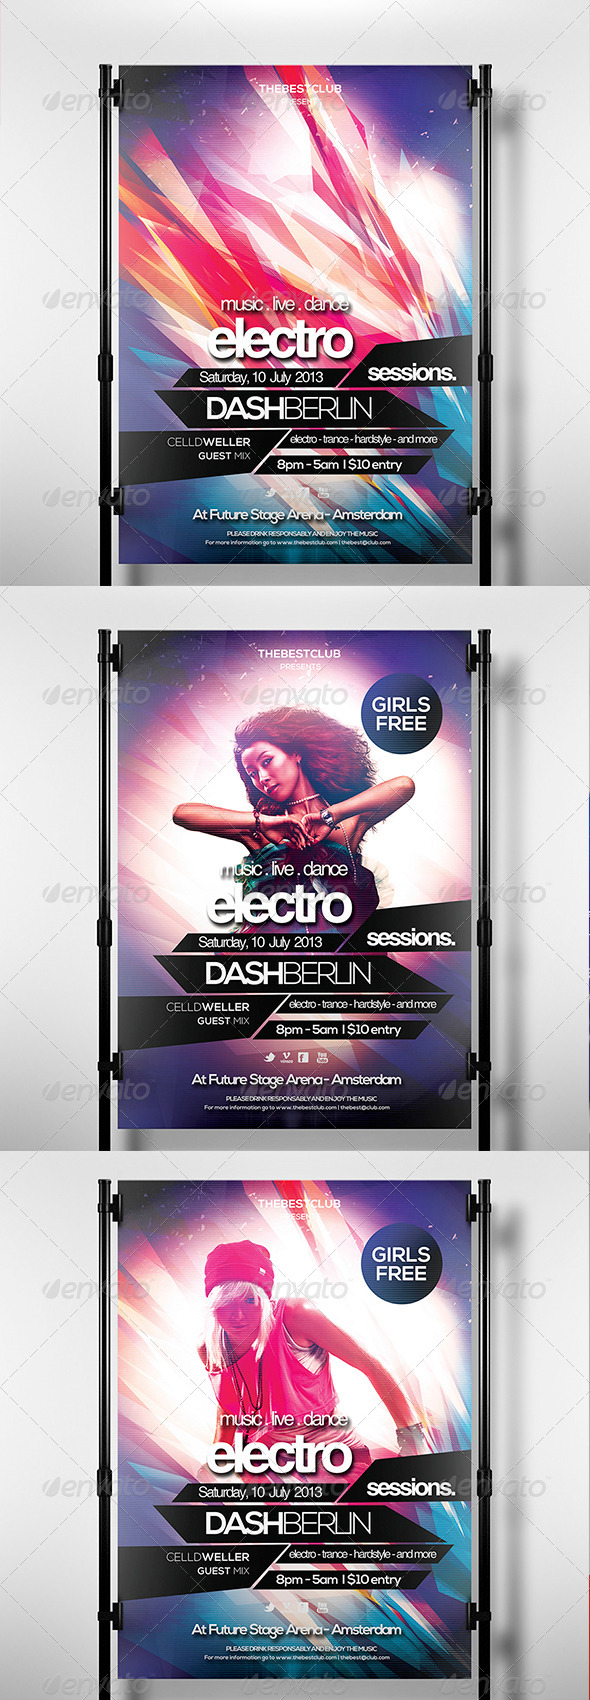 GraphicRiver Electro Sessions 3 Flyer Template 4833949